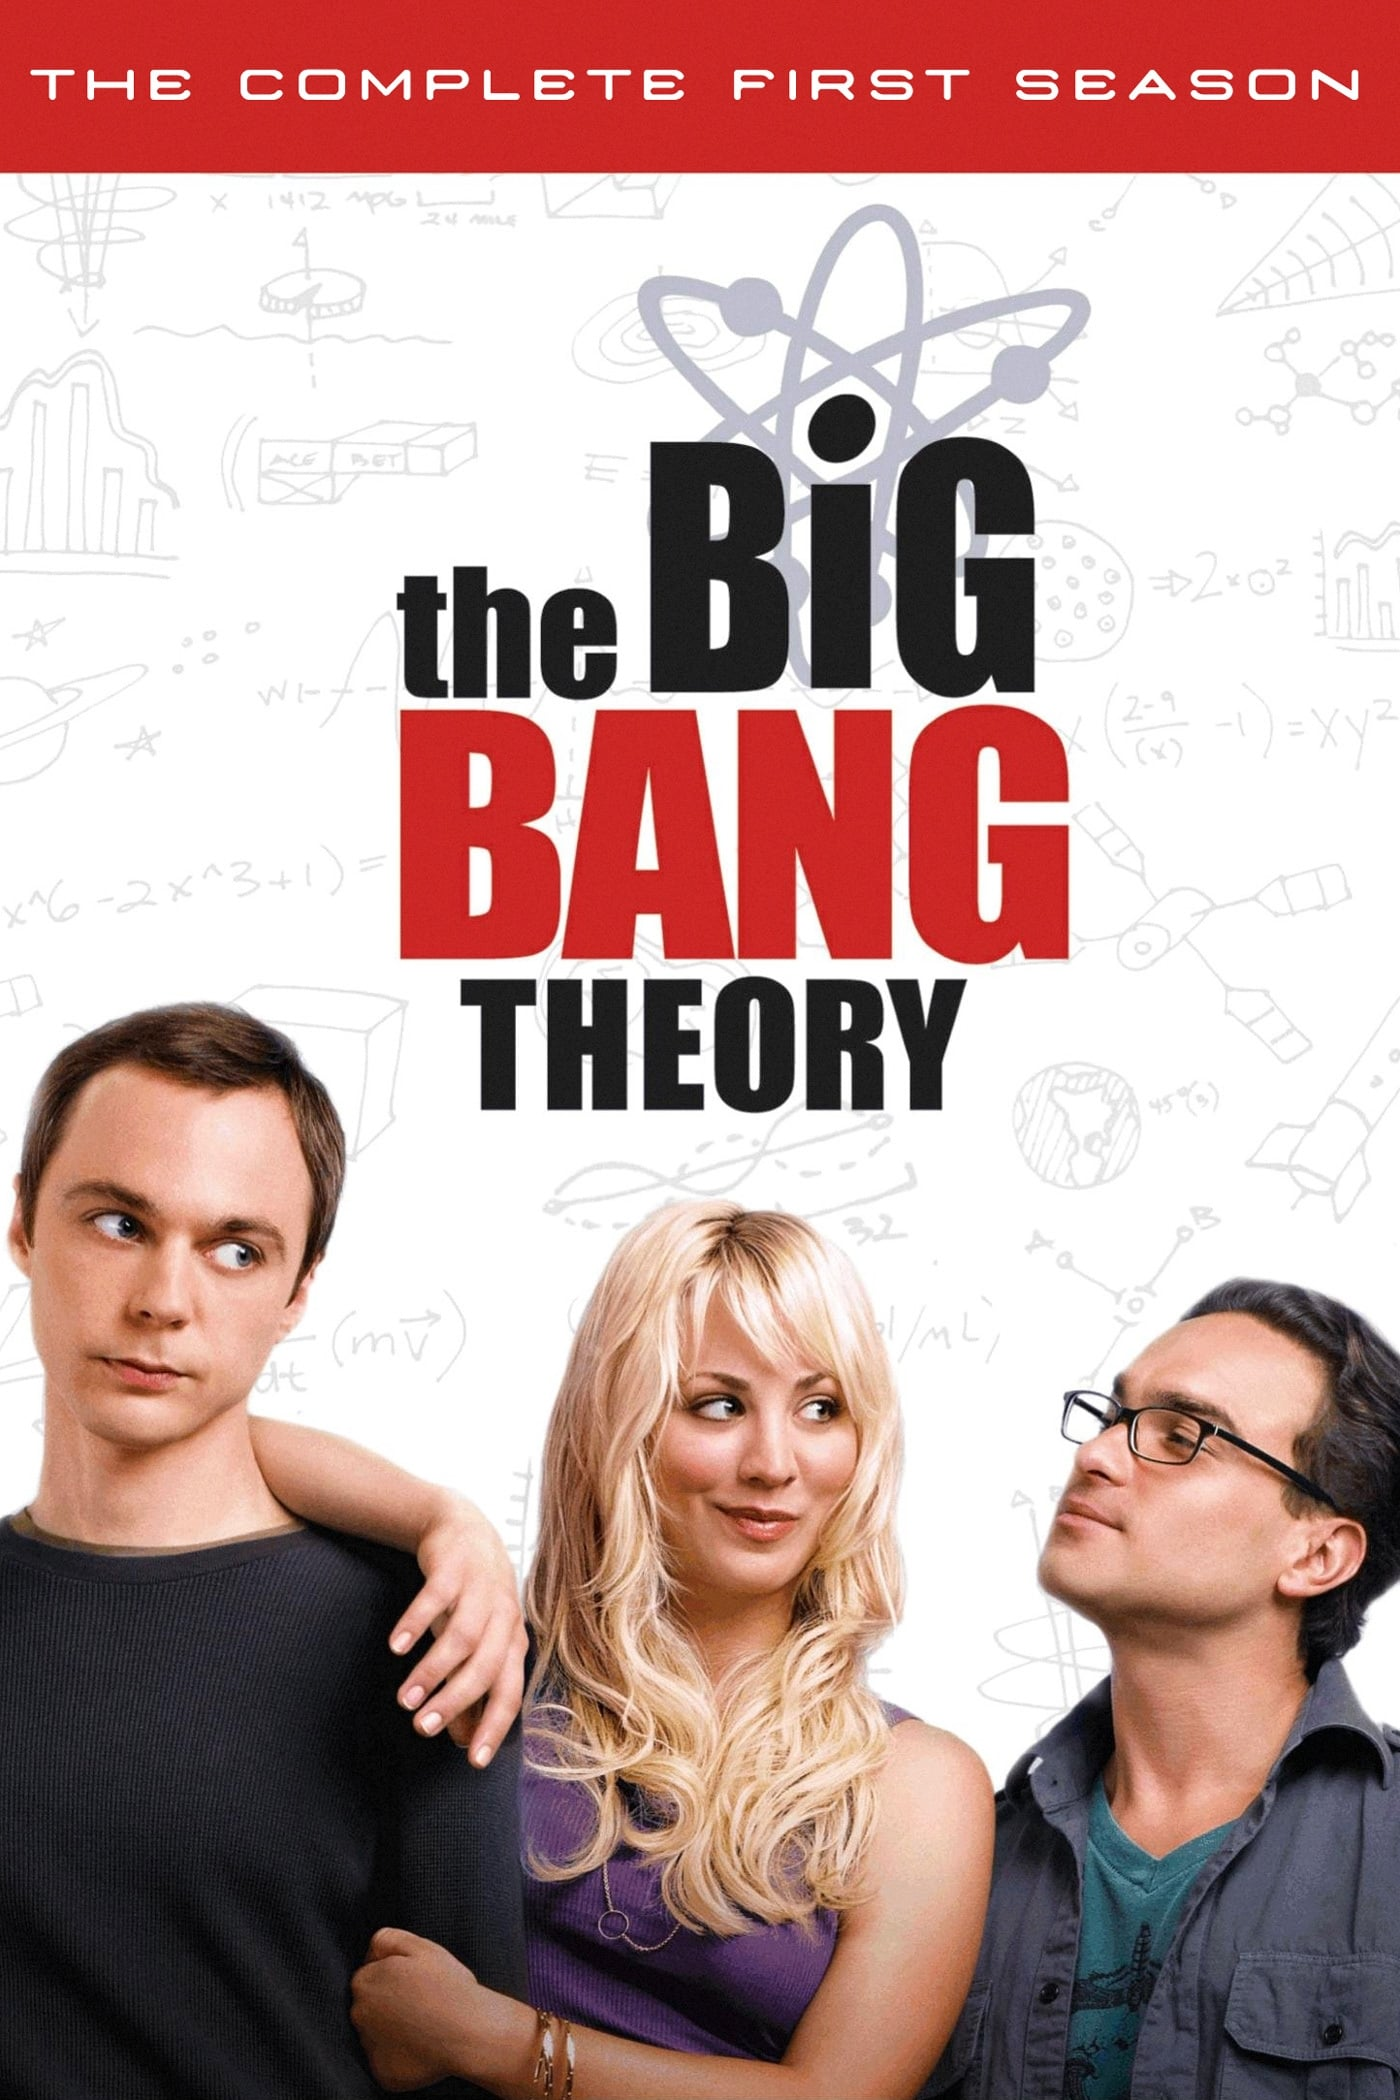 http://ourhometorontoblog.com/the-big-bang-theory-1a-temporada-2007-bluray-720p-dual-audio-torrent-download/